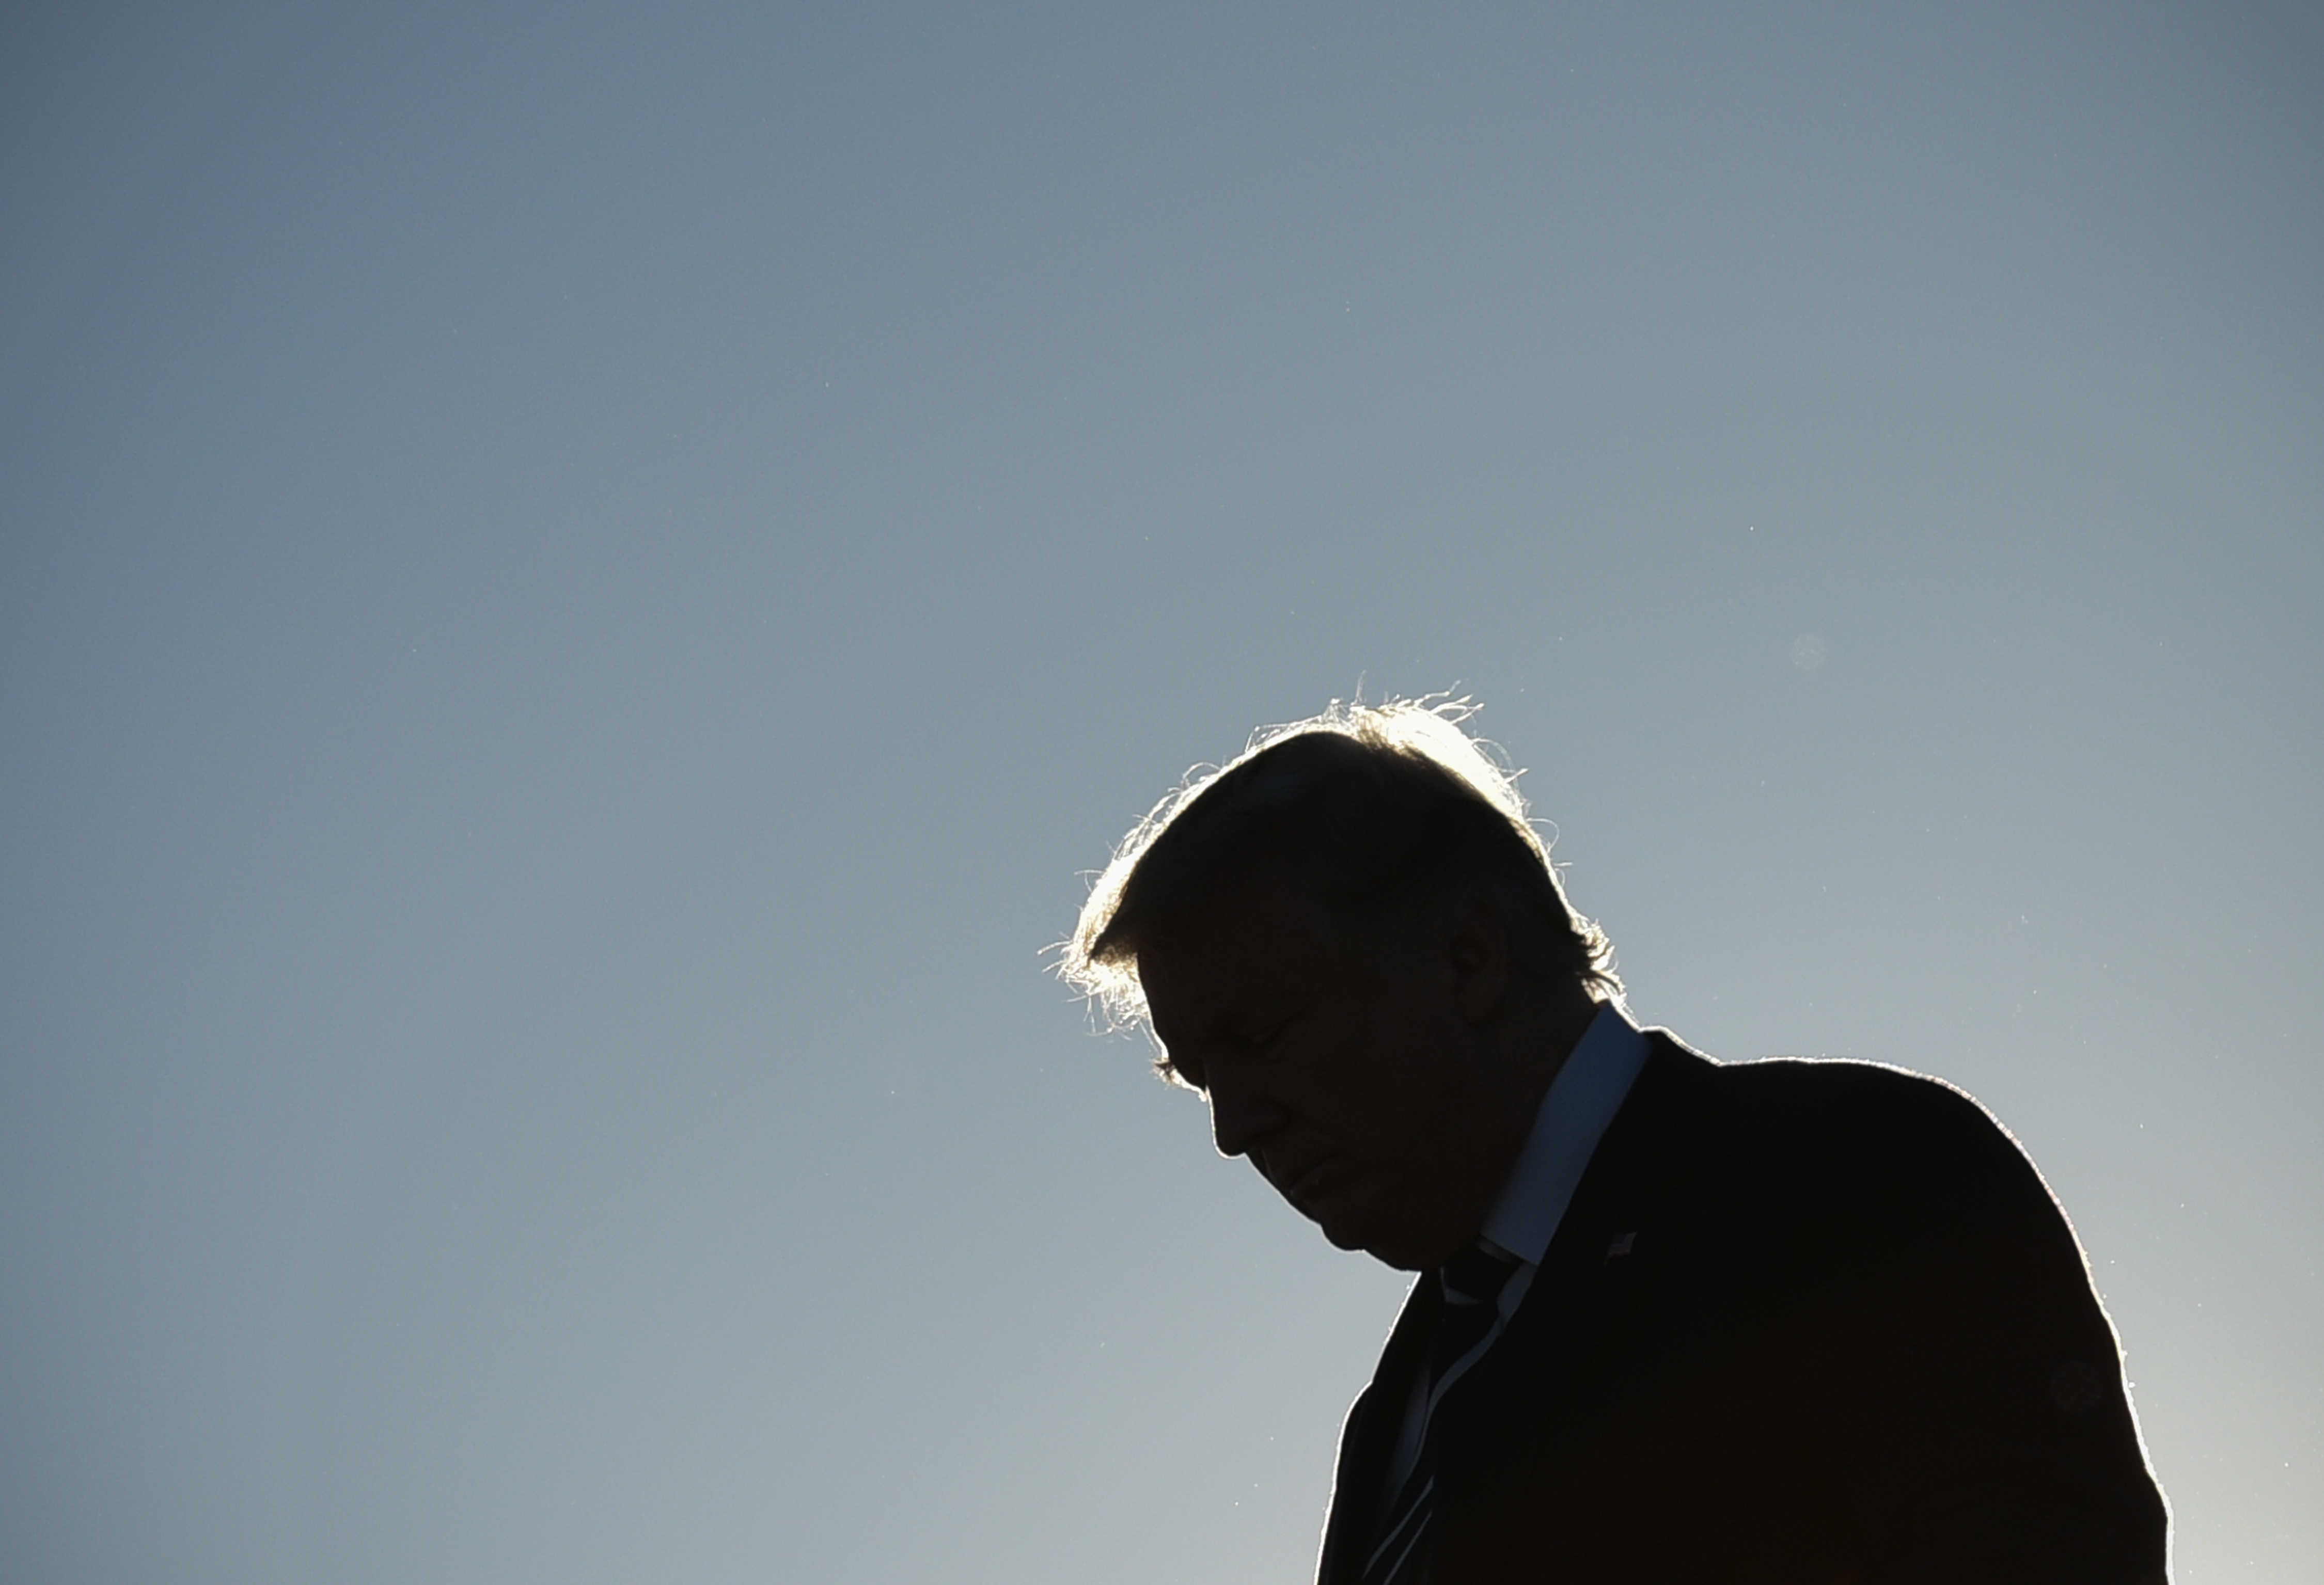 Trump's silhouette is stark against the blue sky; his face and body are in shadow; his head down, his shoulders appear slightly slumped, as the sun makes his swooping hairstyle glow slightly.